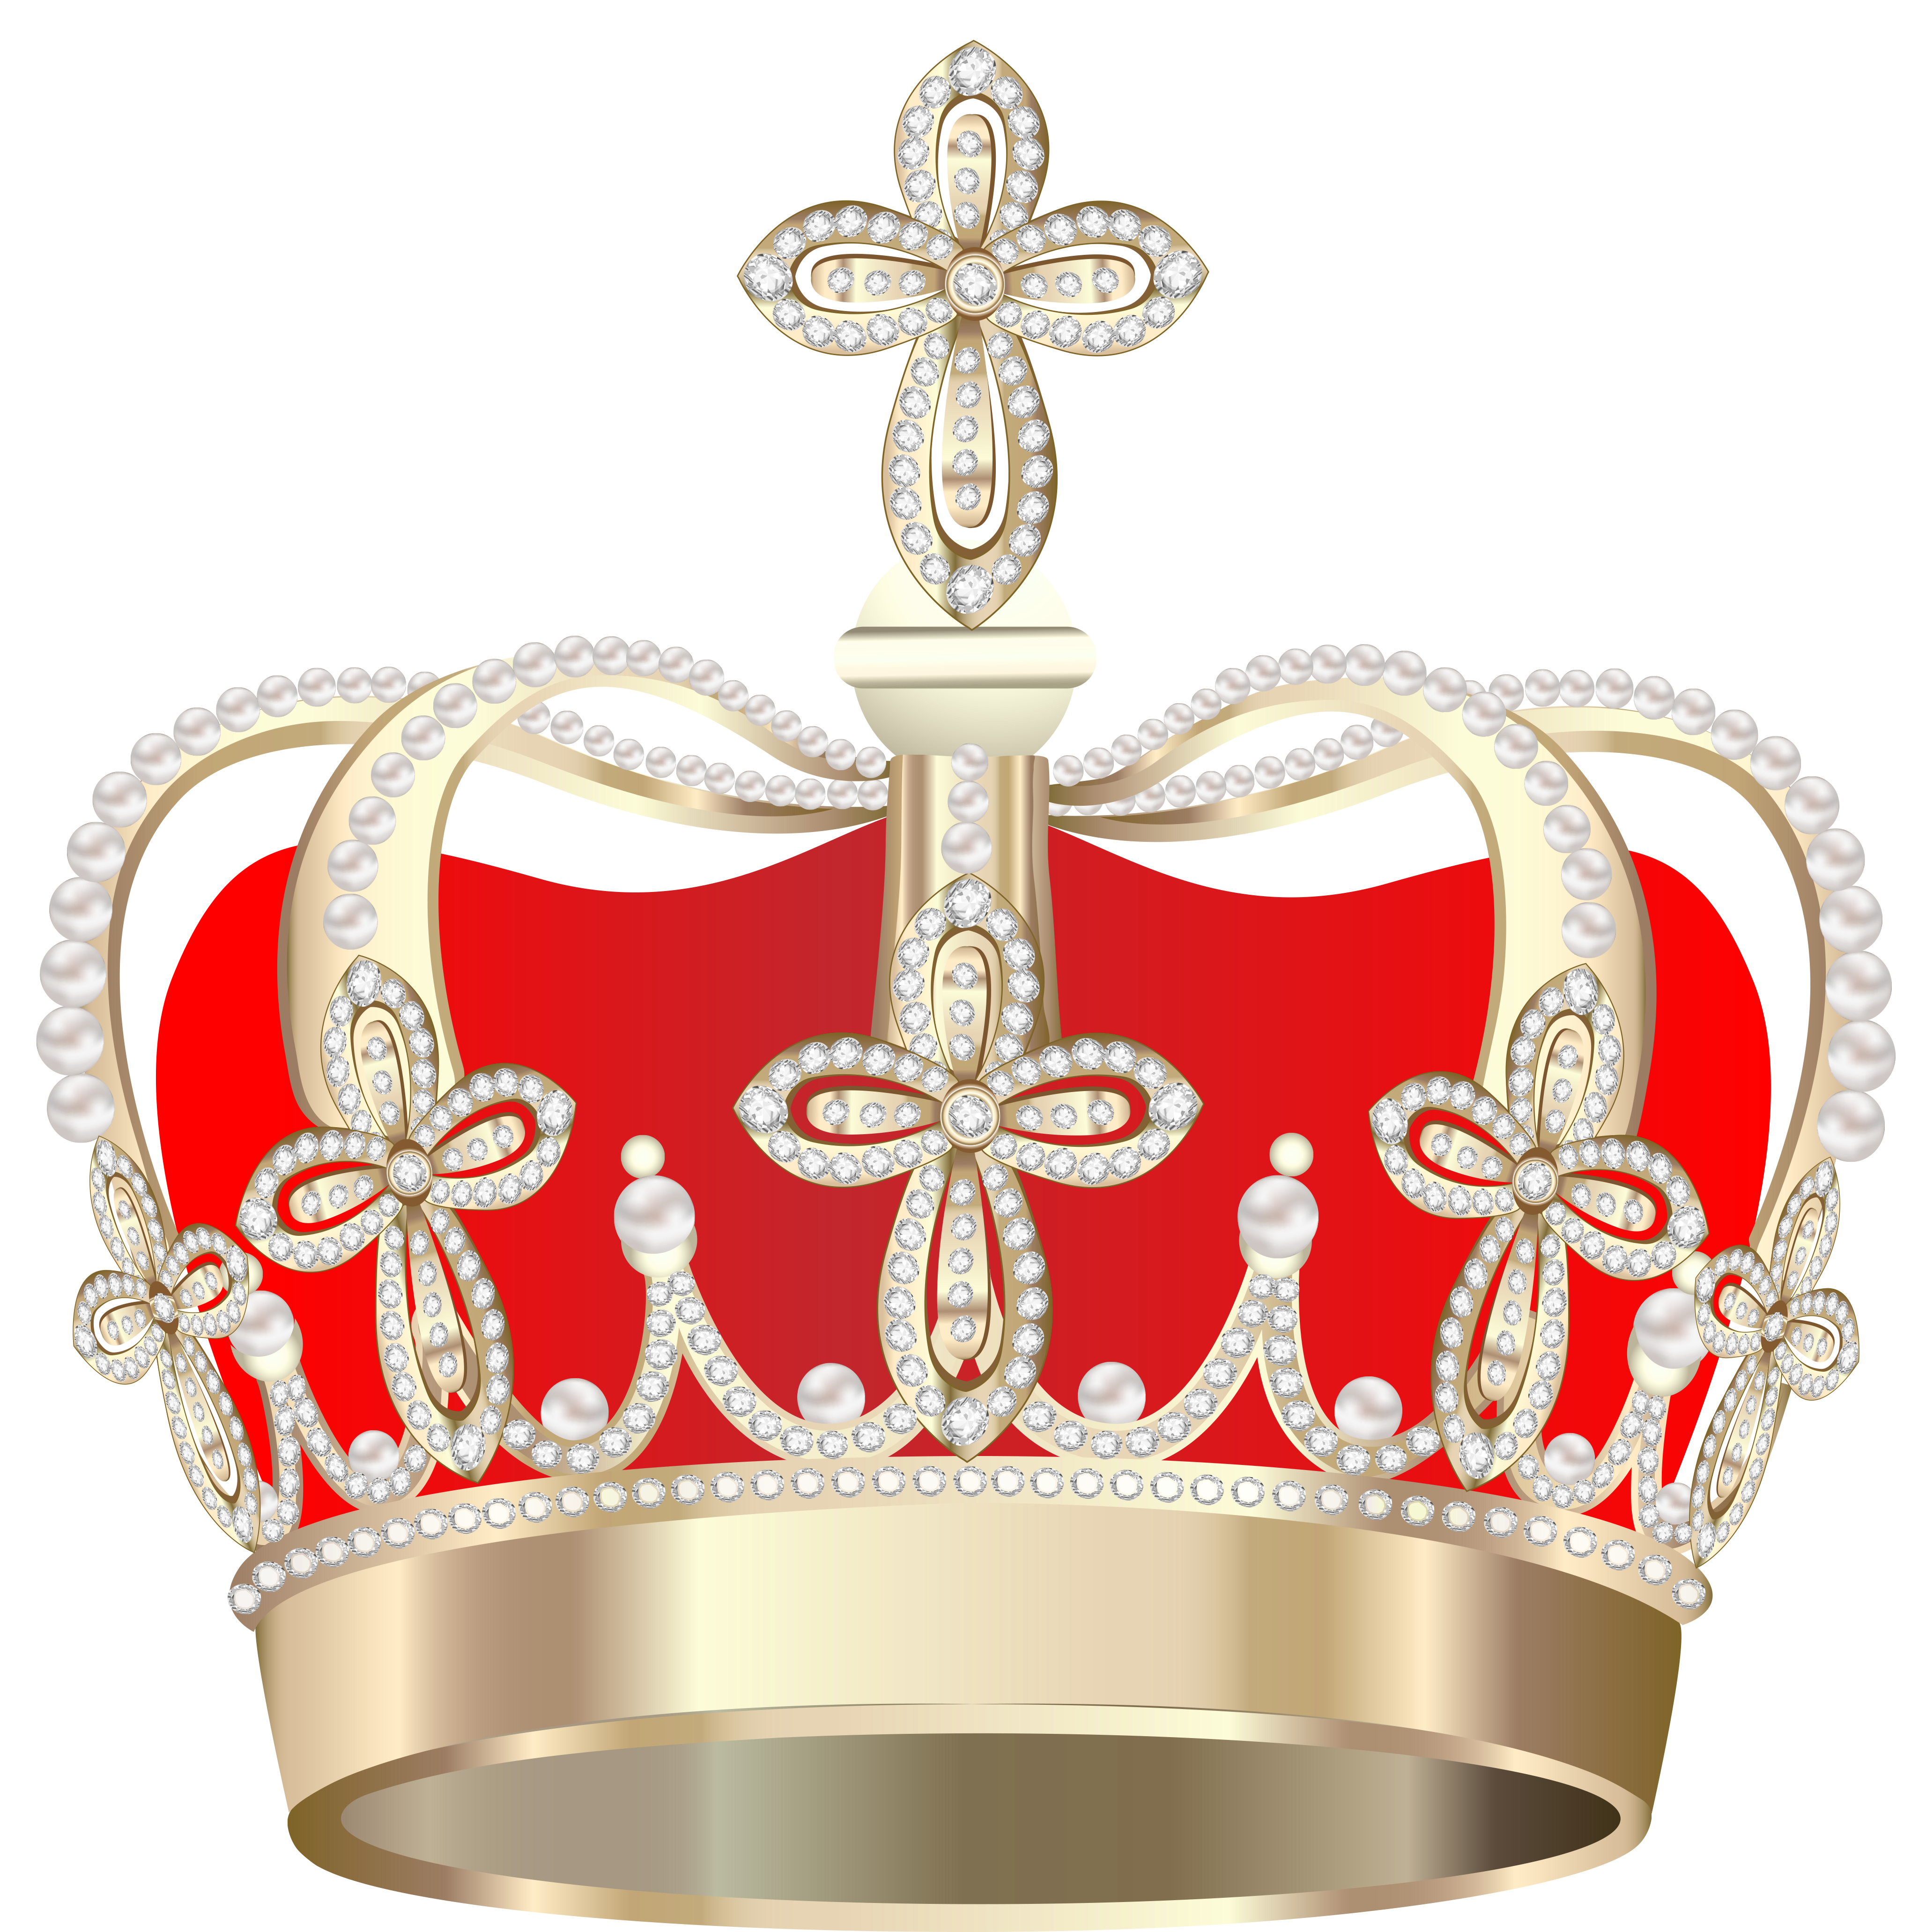 Emoji clipart king. Transparent crown png picture